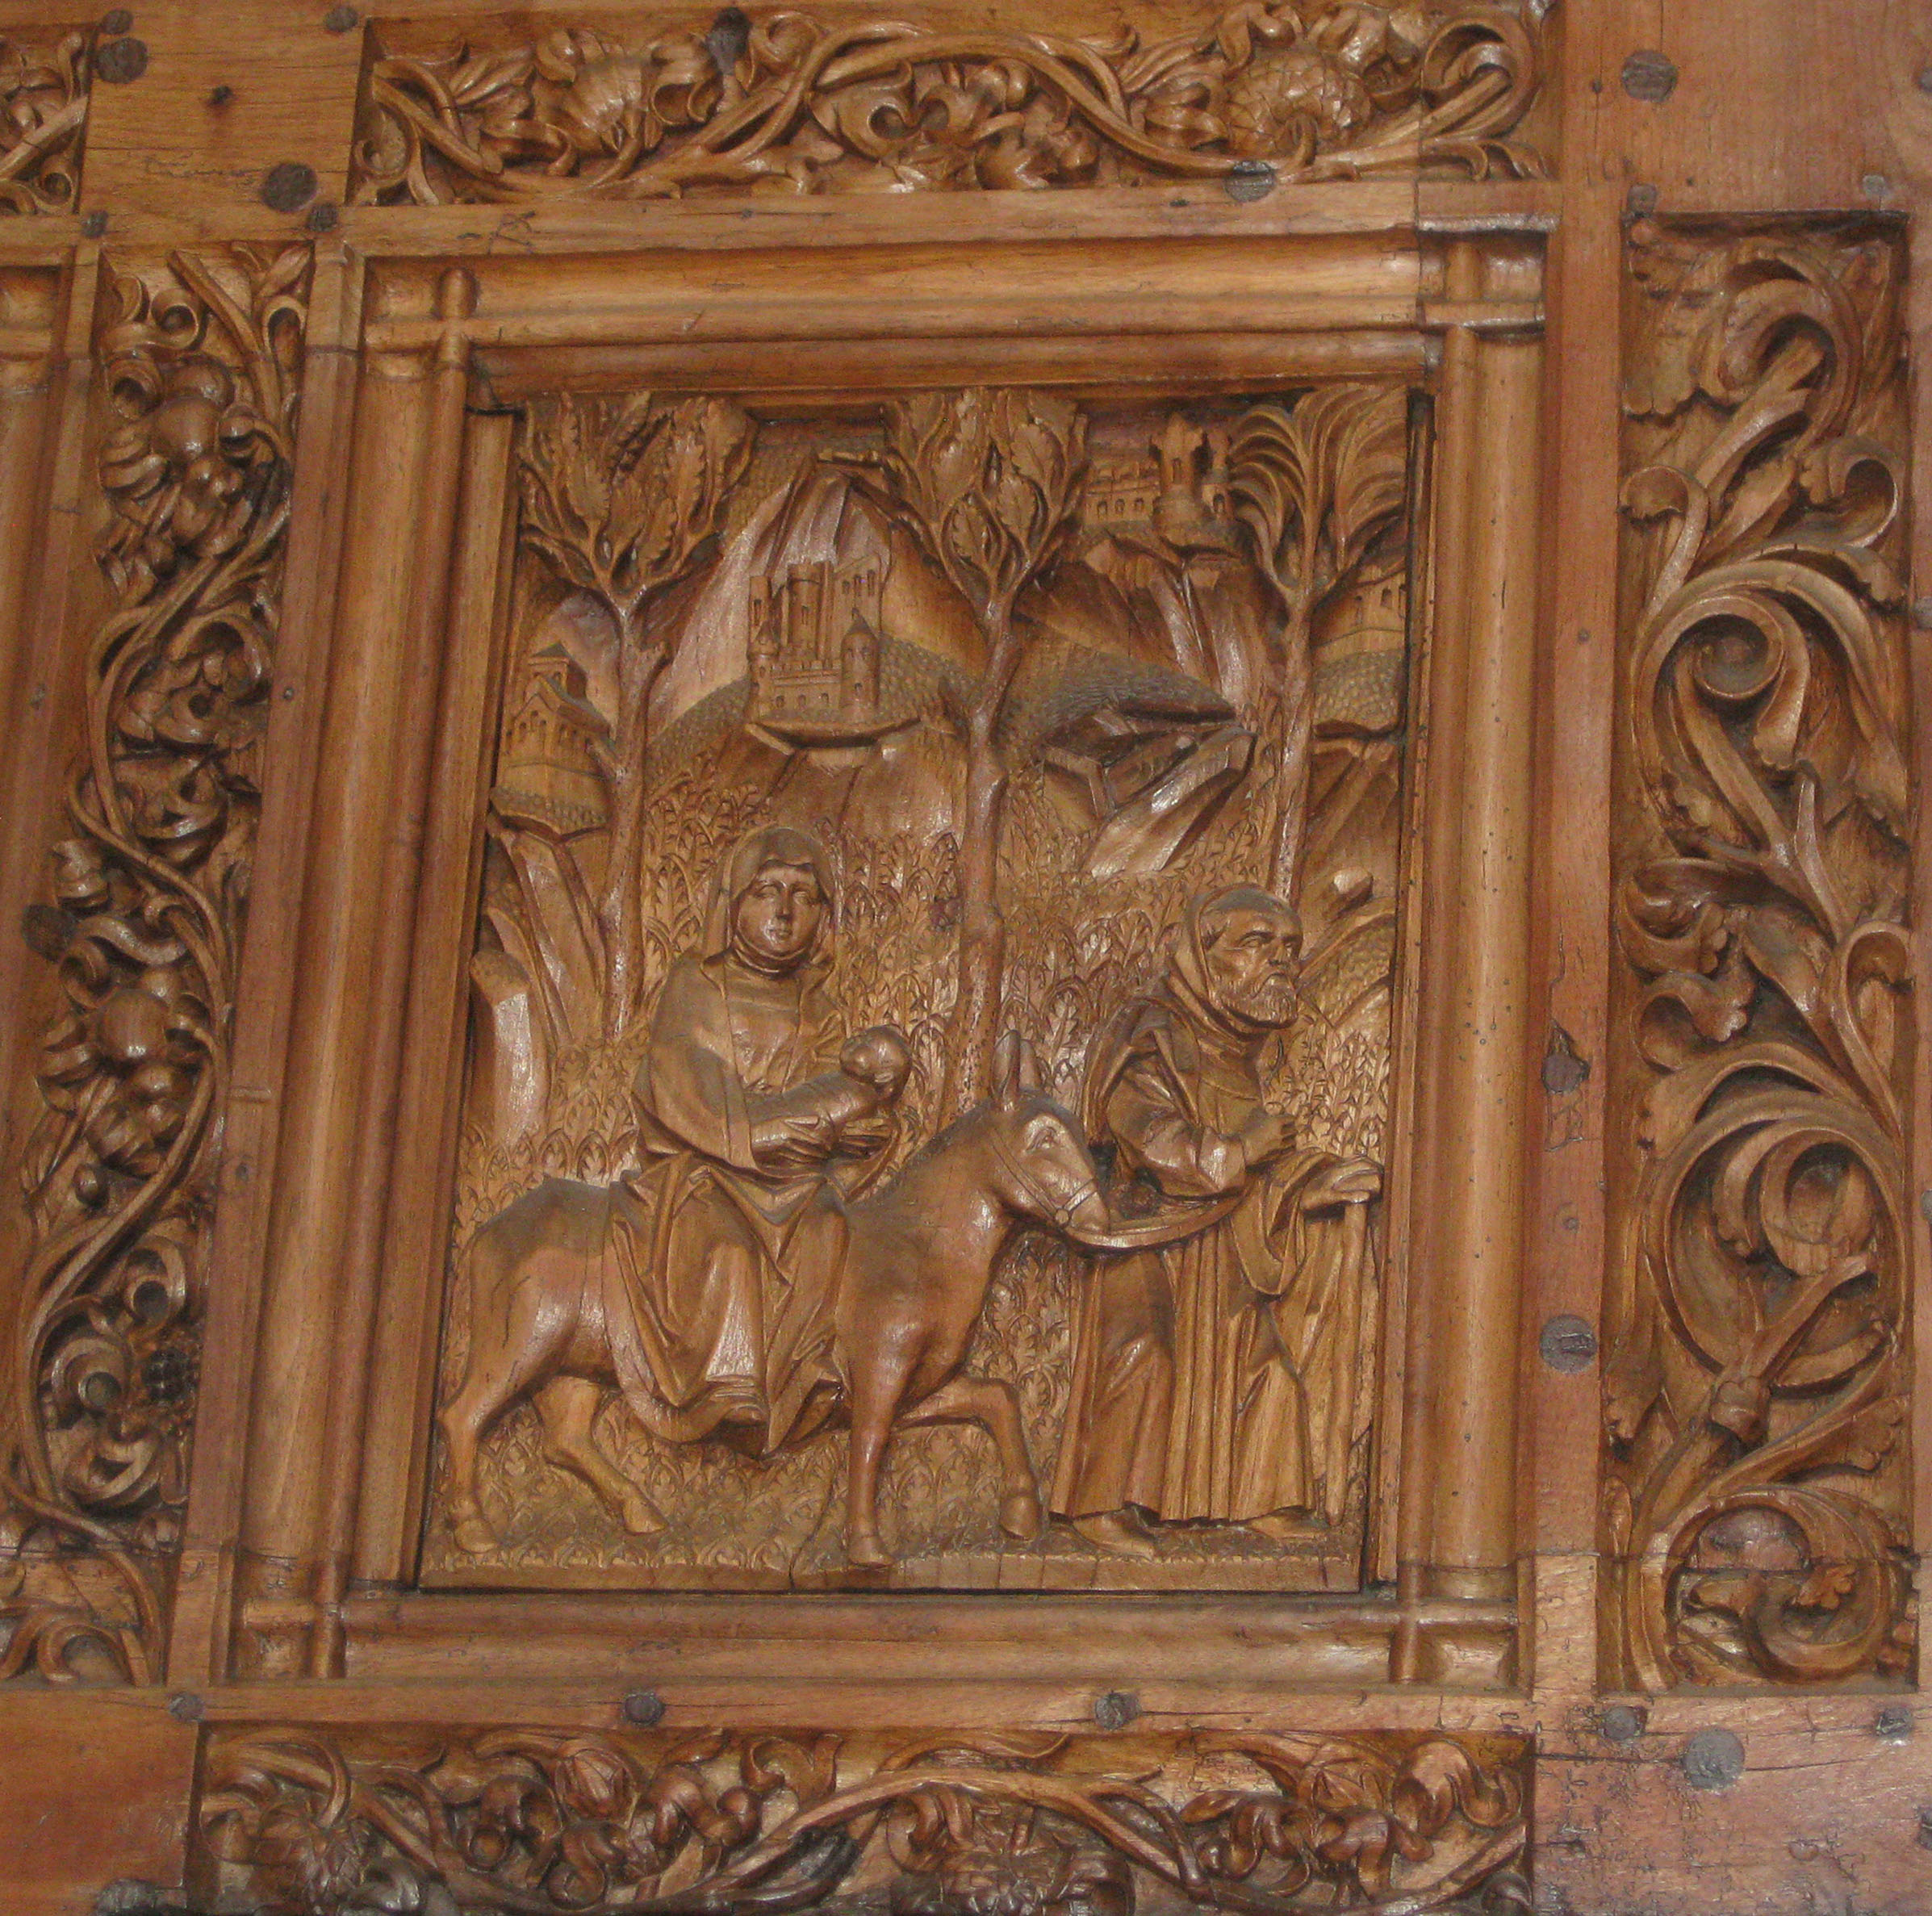 picture of an ancient wood carving